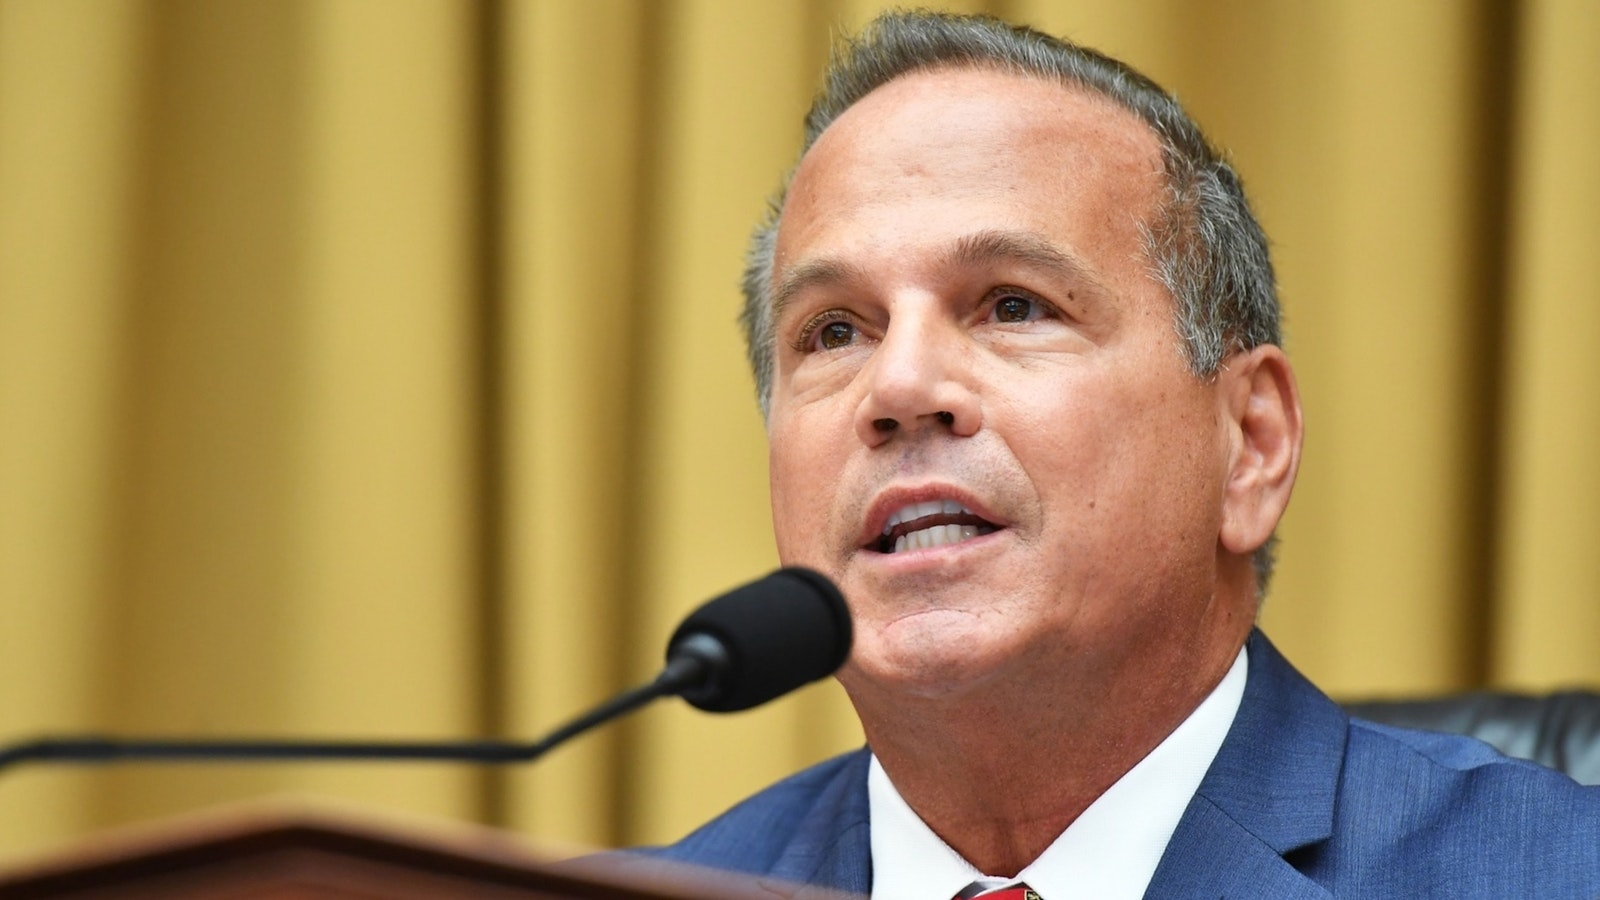 Rep. David Cicilline. Photo: Bloomberg